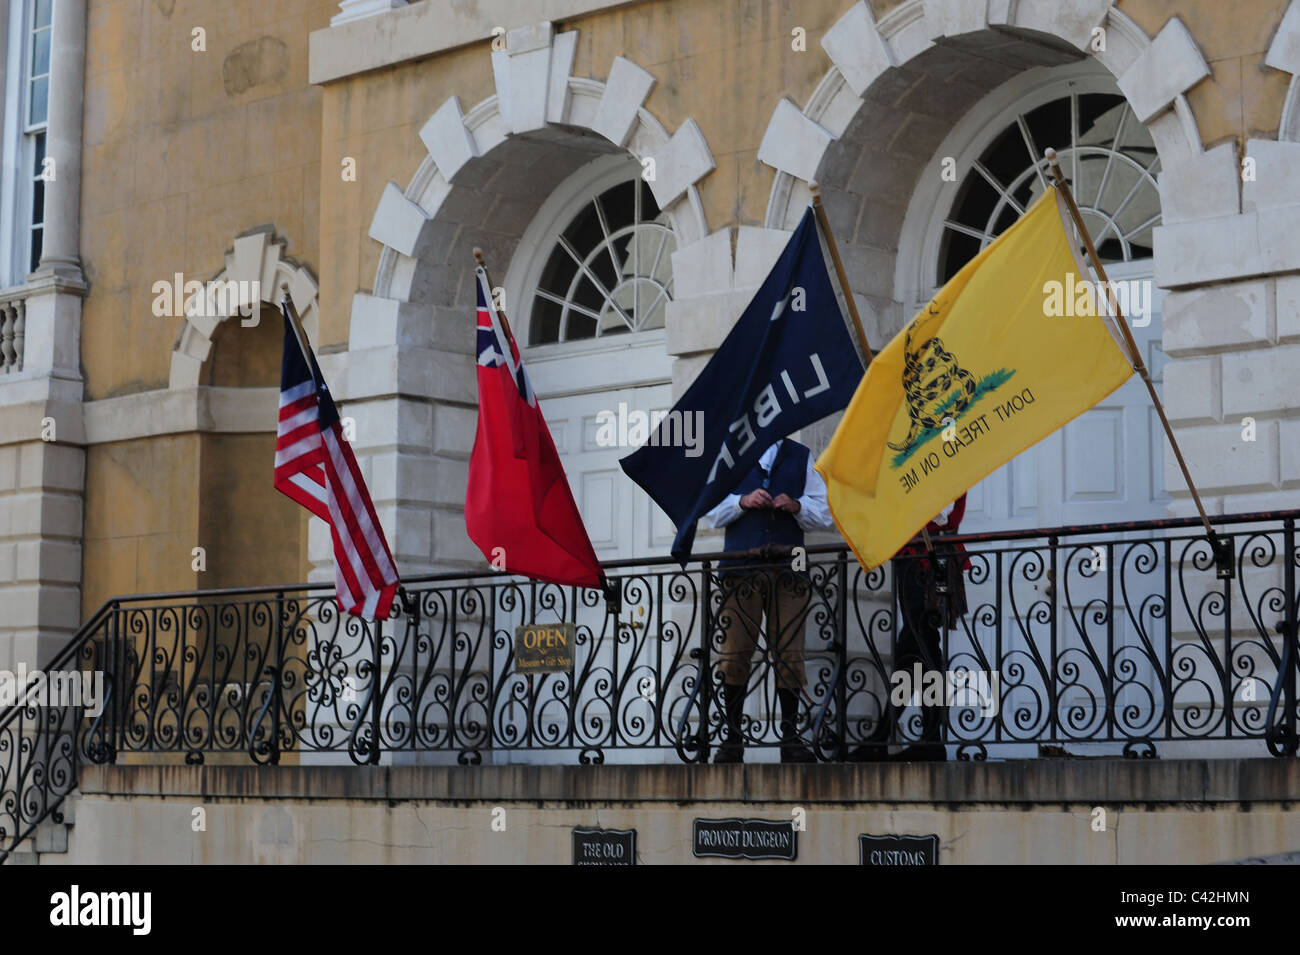 Flags of 17th century colonial period: Union Jack, US, Liberty, and 'Don't Tread on Me' displayed at - Stock Image